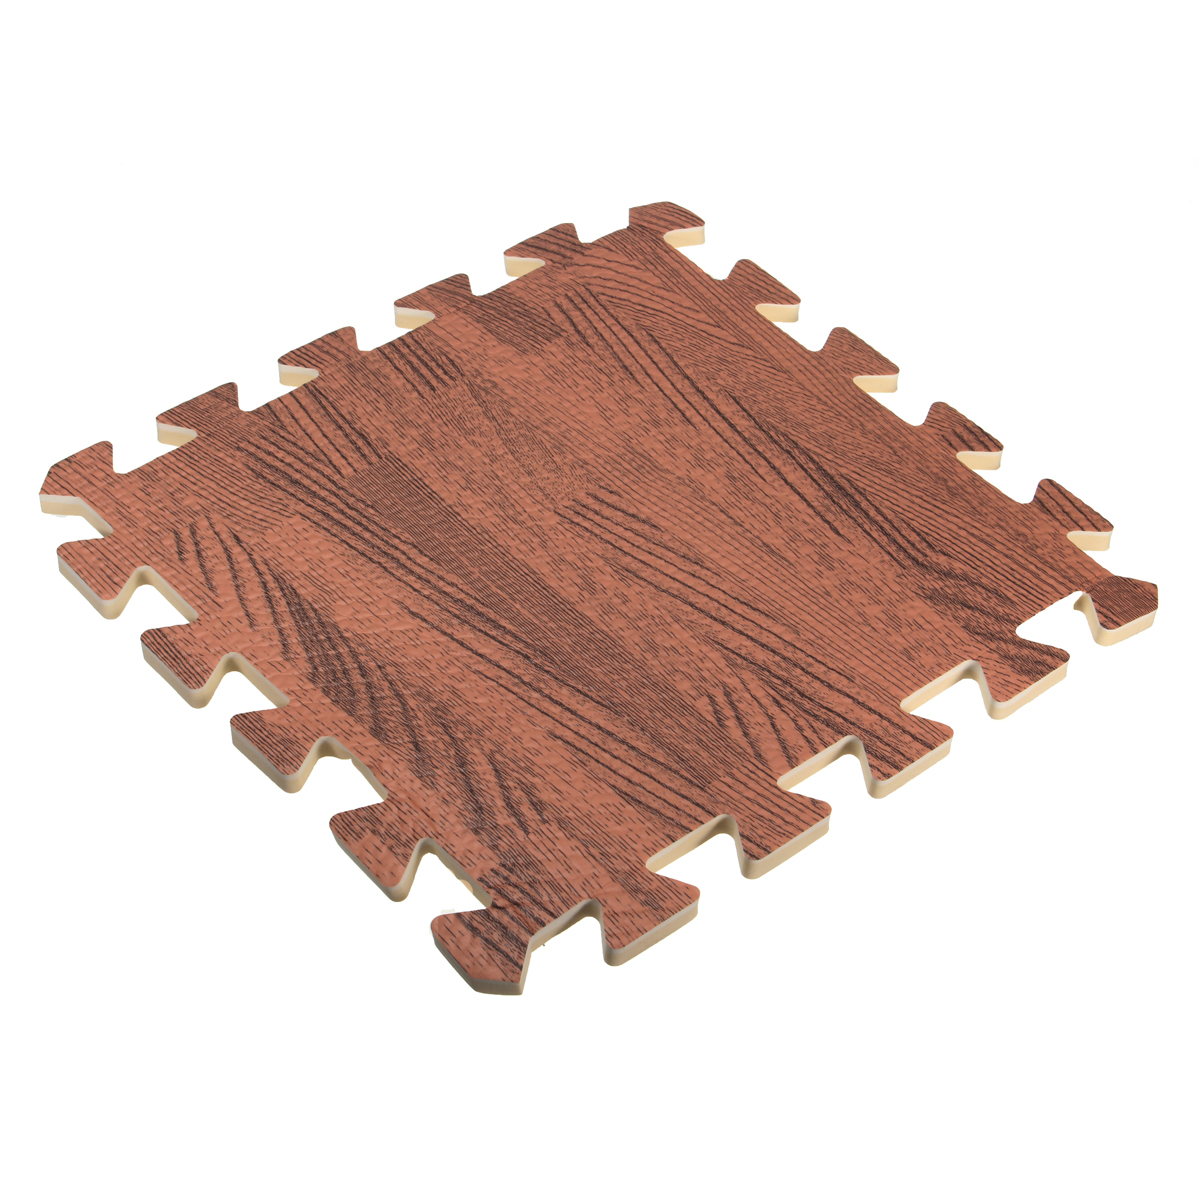 9Pcs 30x30 Square EVA Foam Wood Grain Interlocking Tile